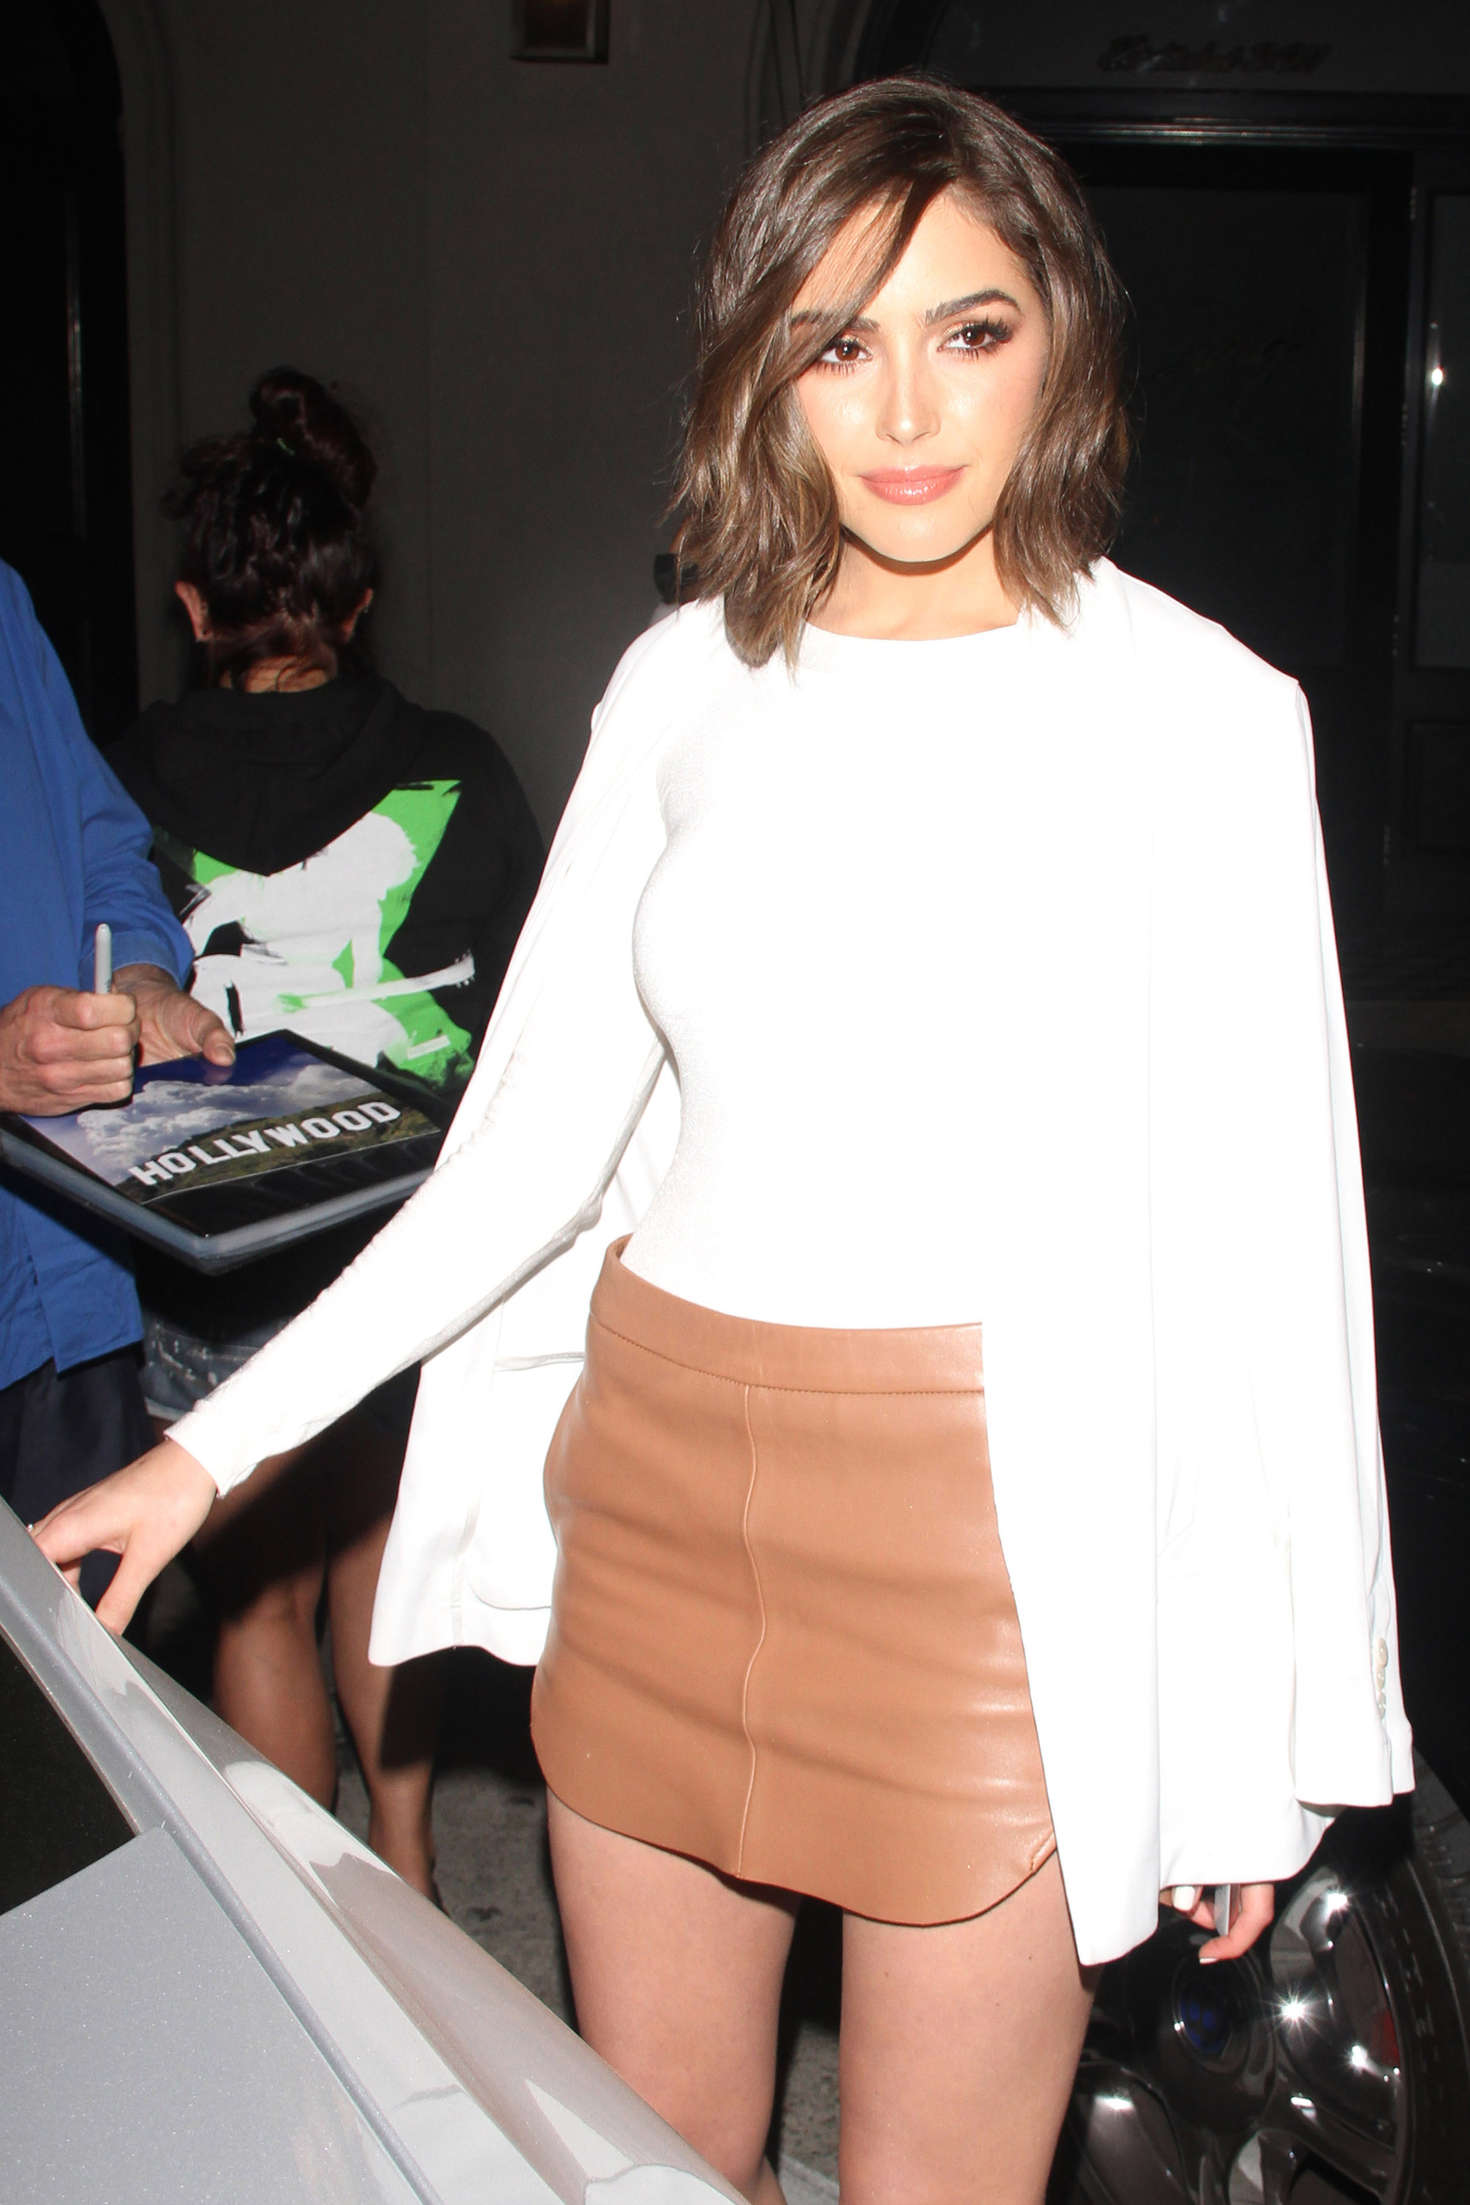 Olivia Culpo in Short Skirt at Craig's Restaurant in West Hollywood